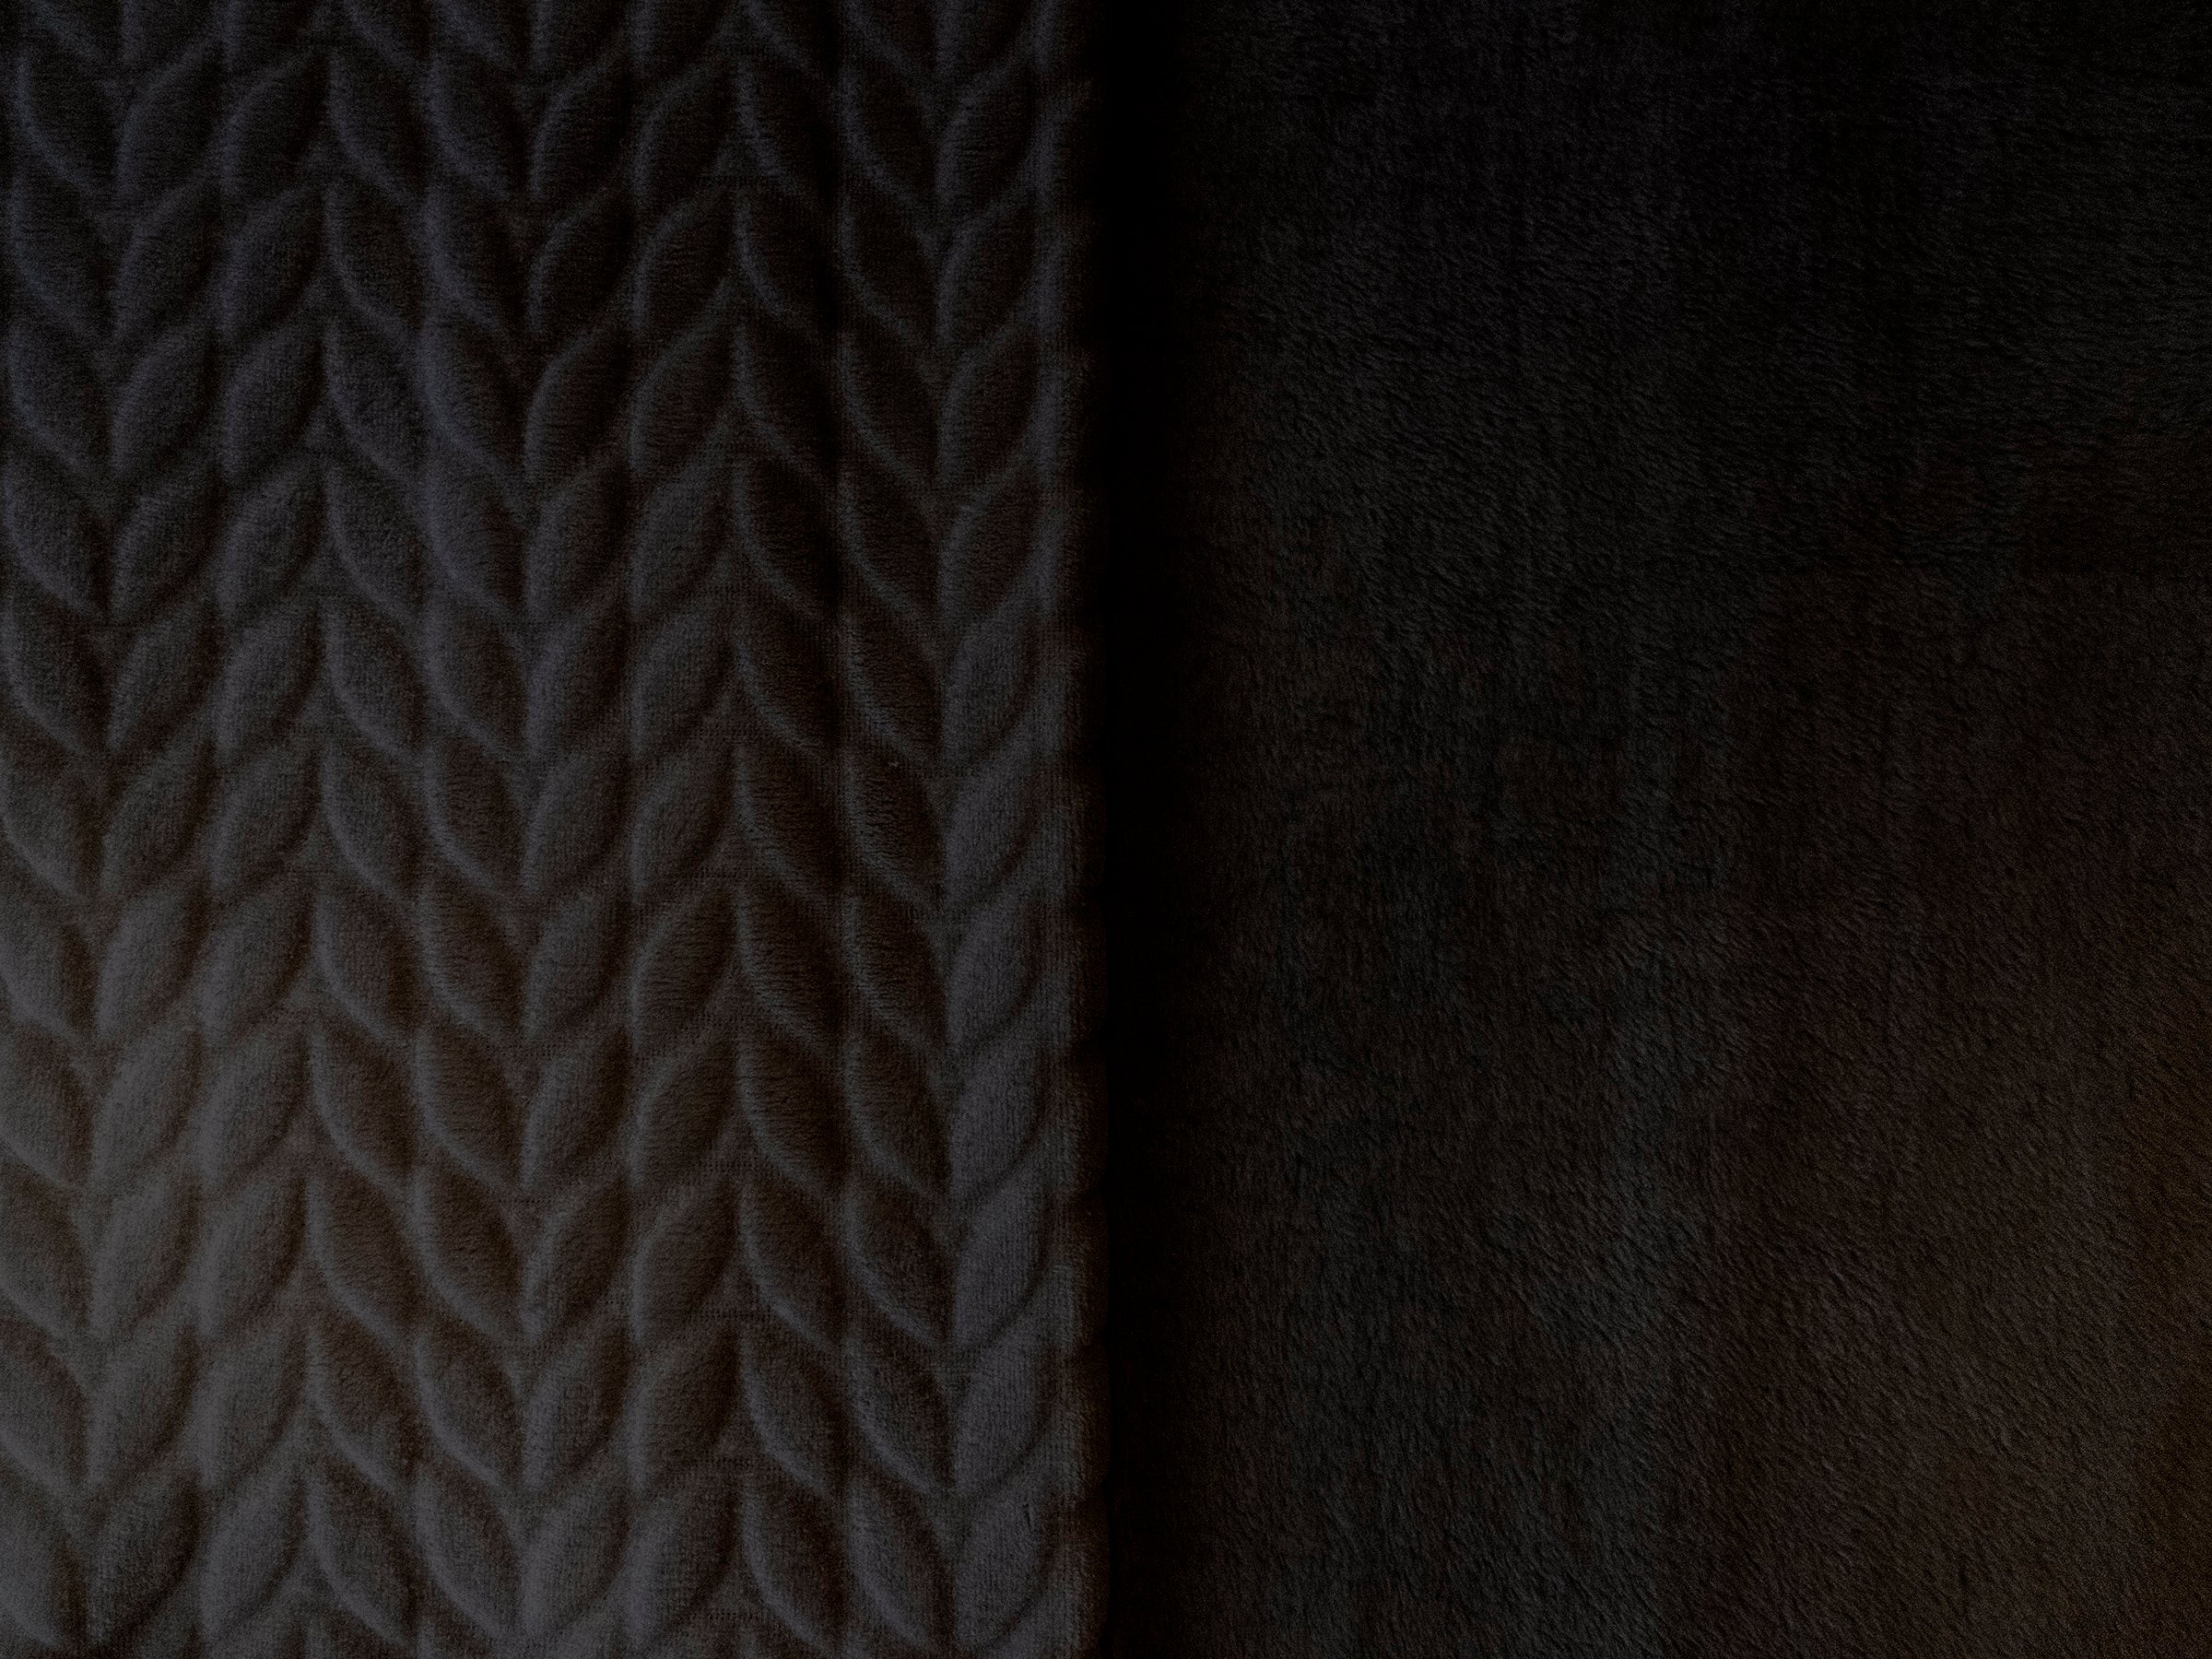 Stitch & Sparkle 100% Polyester Squiggly Minky  Fleece, Black, Blanket Fabric, Apparel Fabric, Nurcery Fabric, 60'', 245Gsm